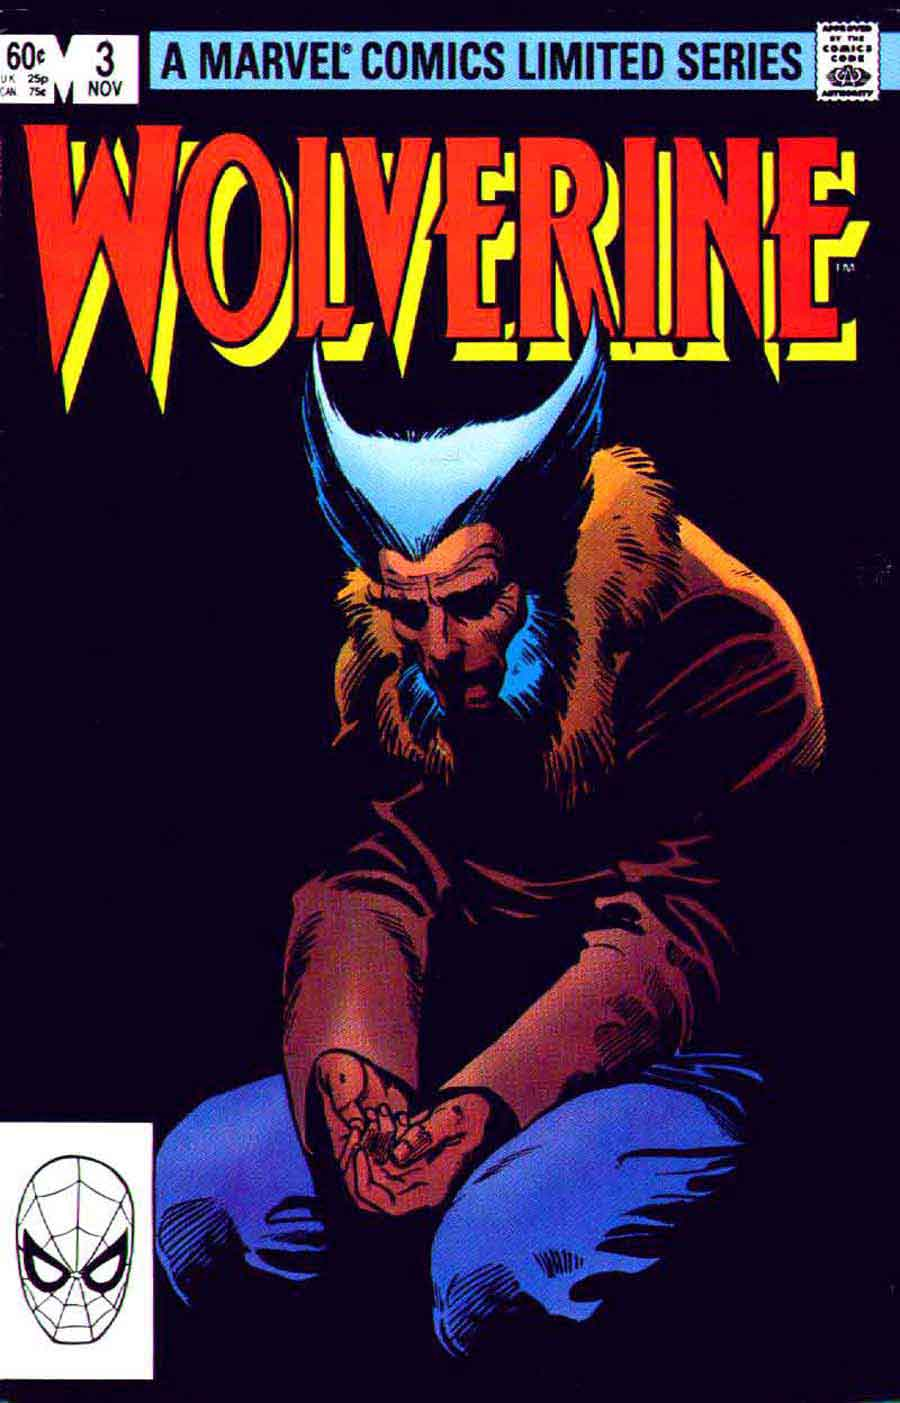 Wolverine v1 #3 - Frank Miller art 1980s marvel comic book cover